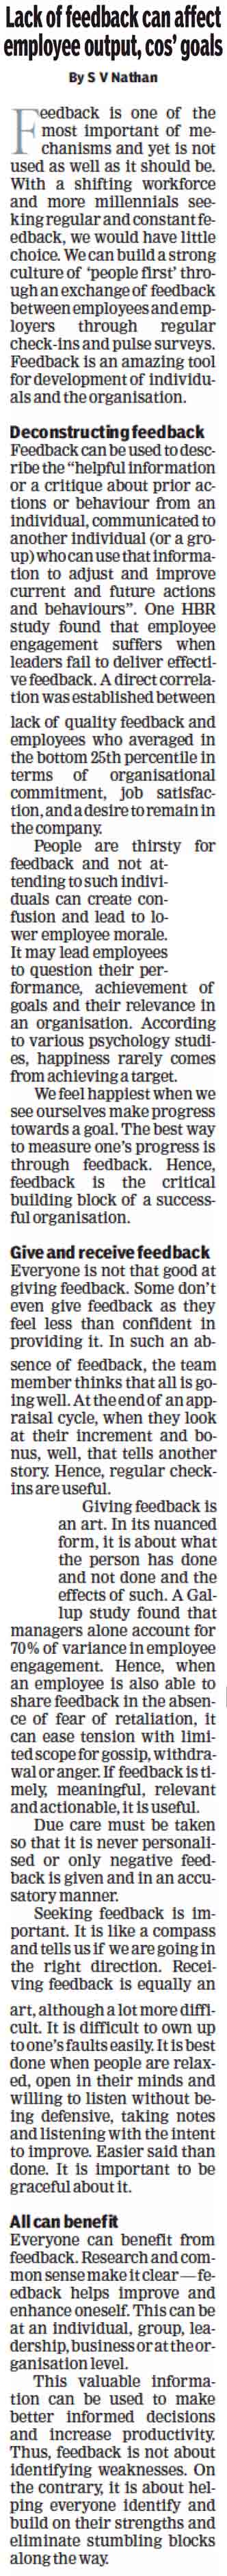 Lack of feedback can affect employee output, cos' goals